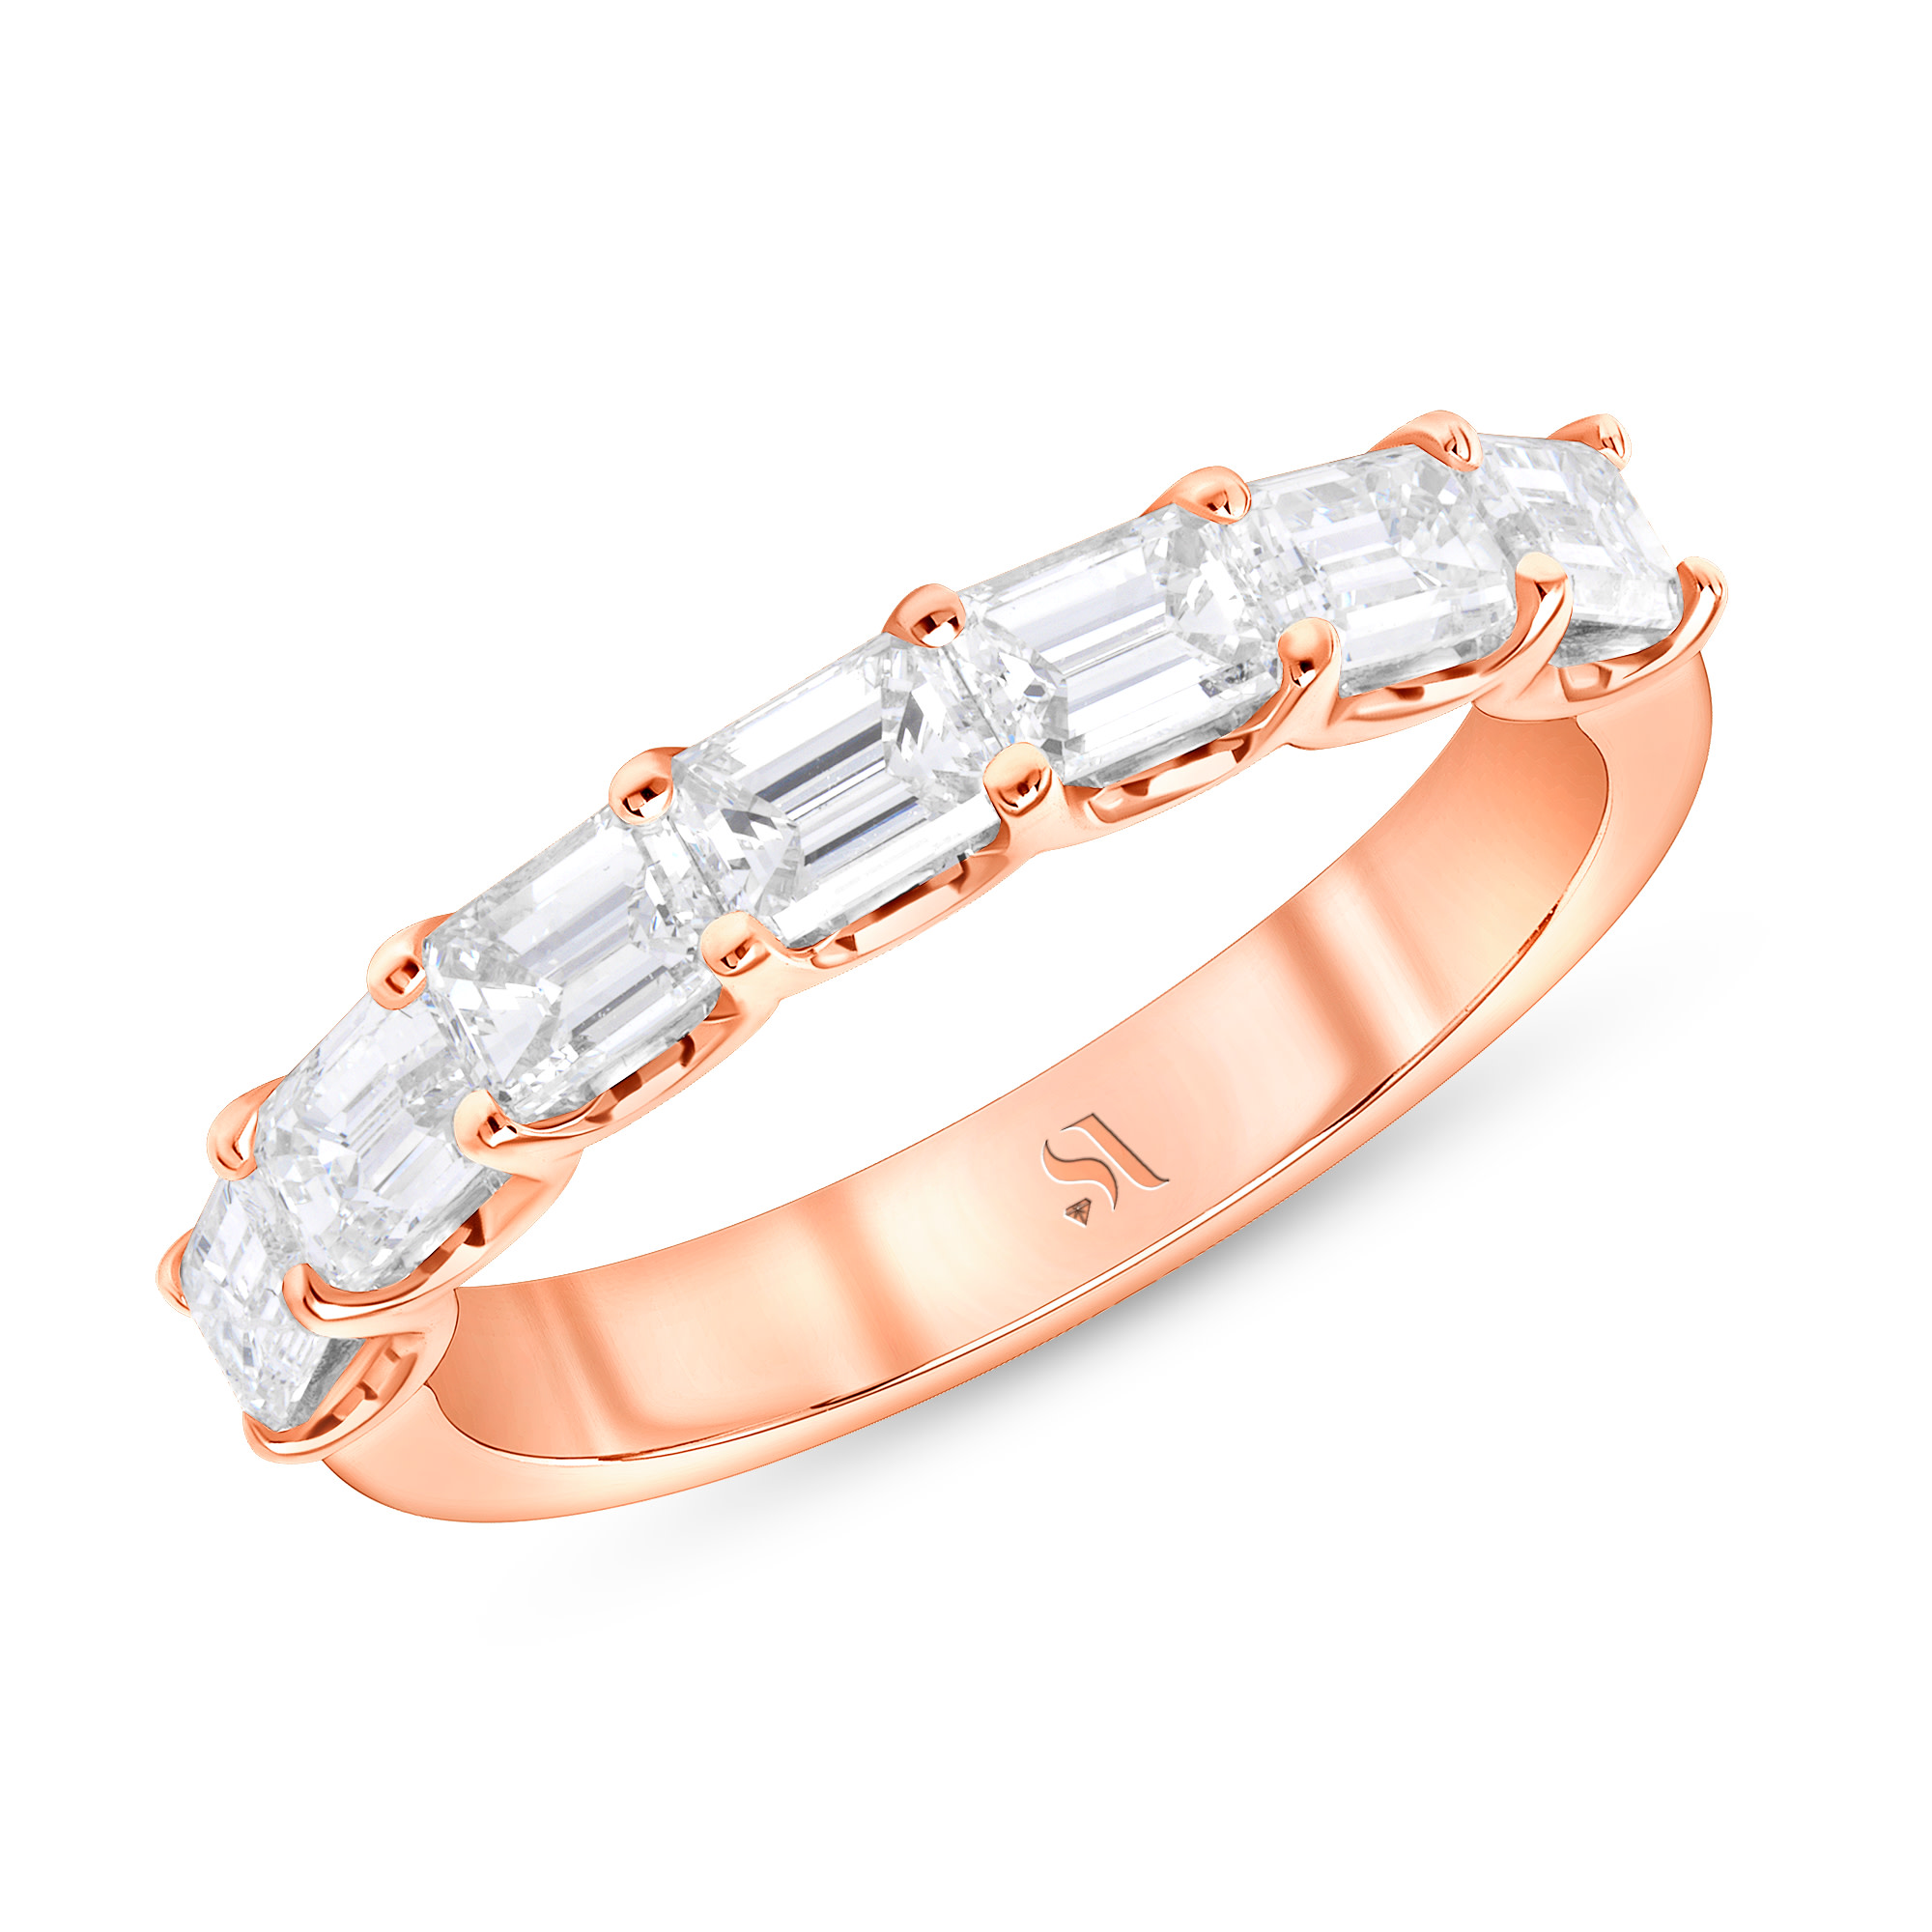 emerald cut diamond half eternity band rose gold